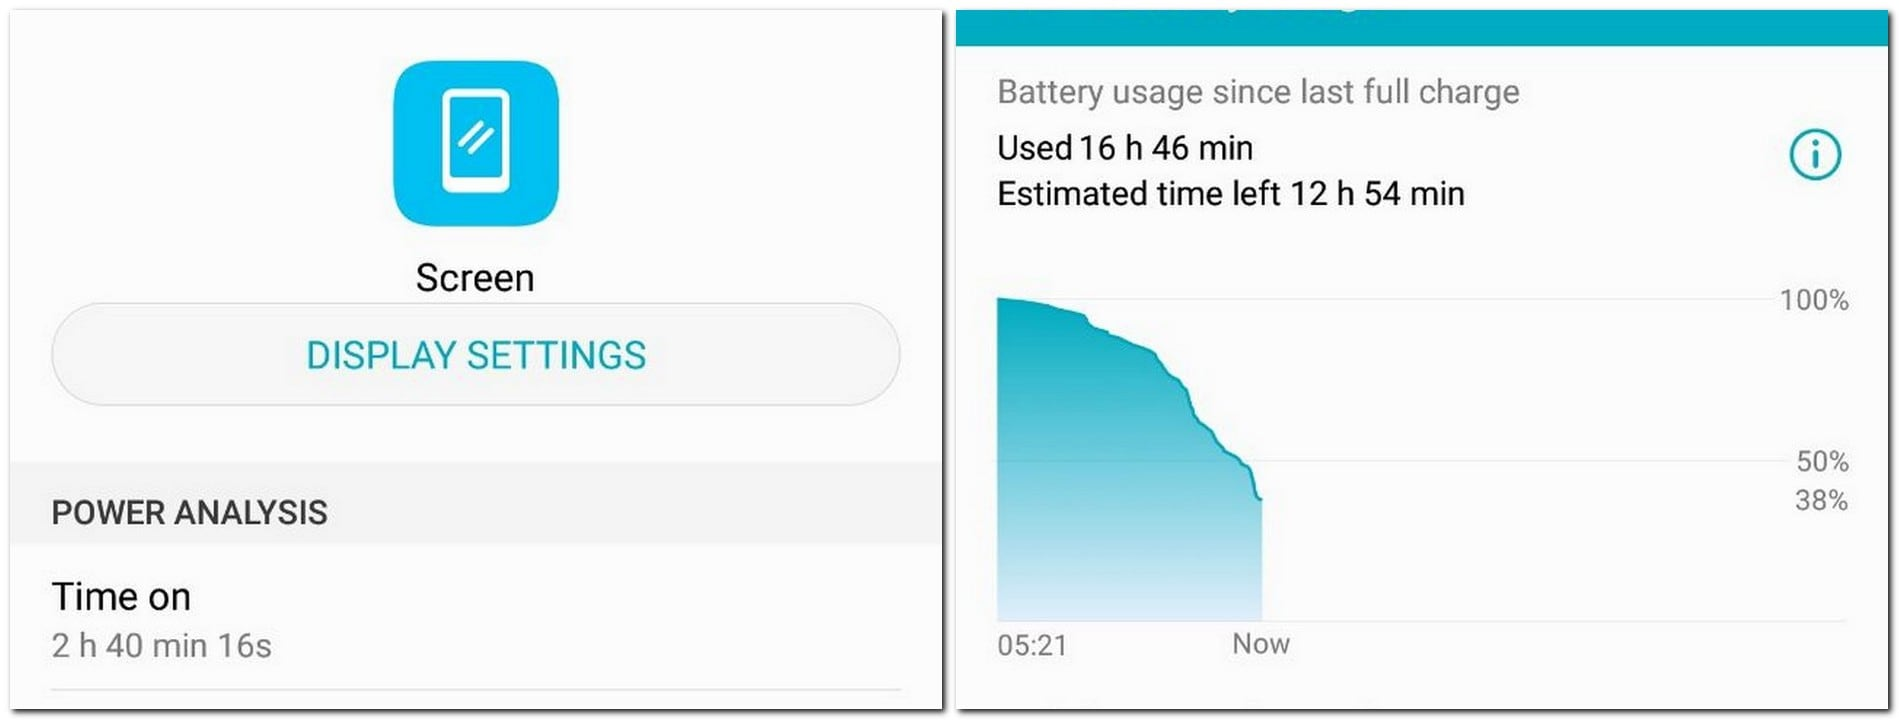 This is the usage after the phone being fully charged early morning and the screenshot taken at 10 pm